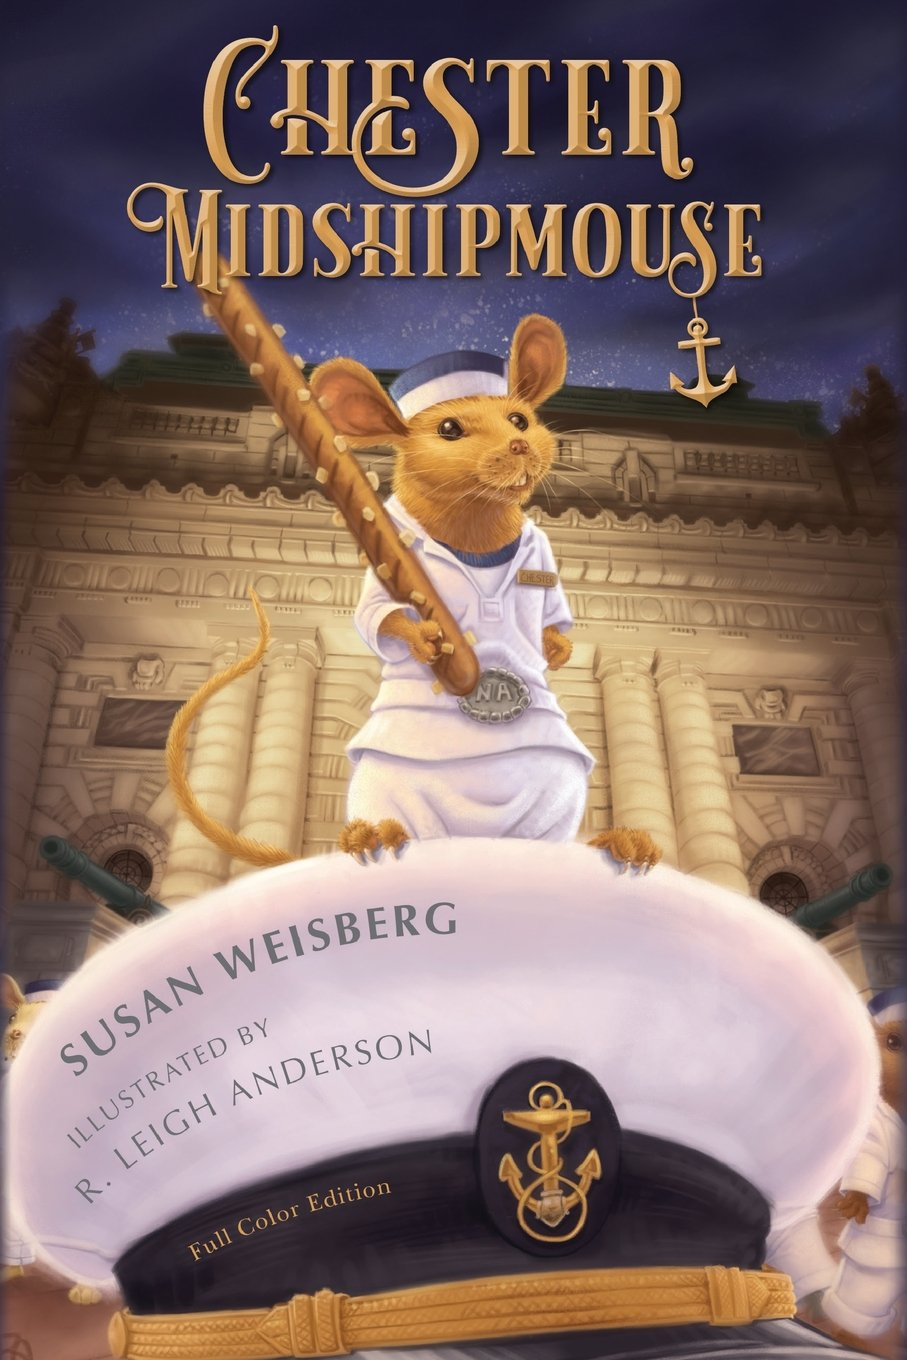 Chester Midshipmouse: Special Full Color Edition